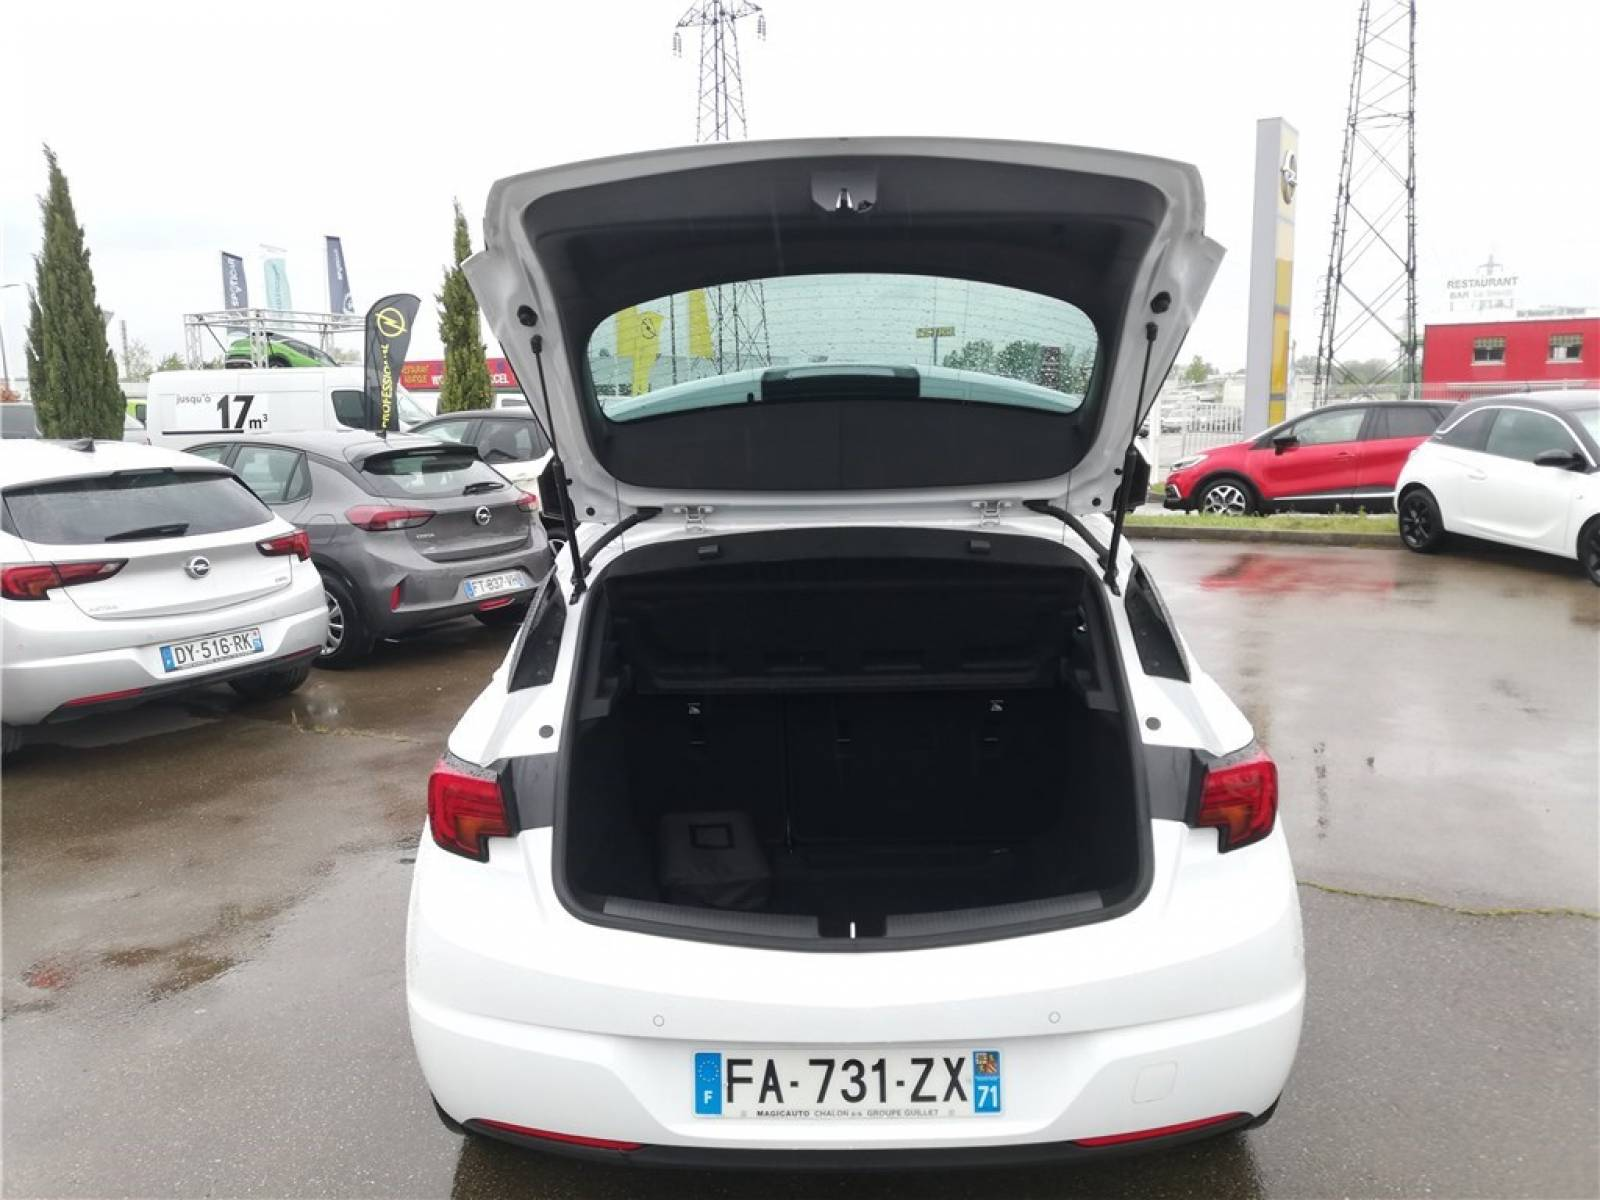 OPEL Astra 1.0 Turbo 105 ch ECOTEC Start/Stop - véhicule d'occasion - Groupe Guillet - Opel Magicauto - Chalon-sur-Saône - 71380 - Saint-Marcel - 4